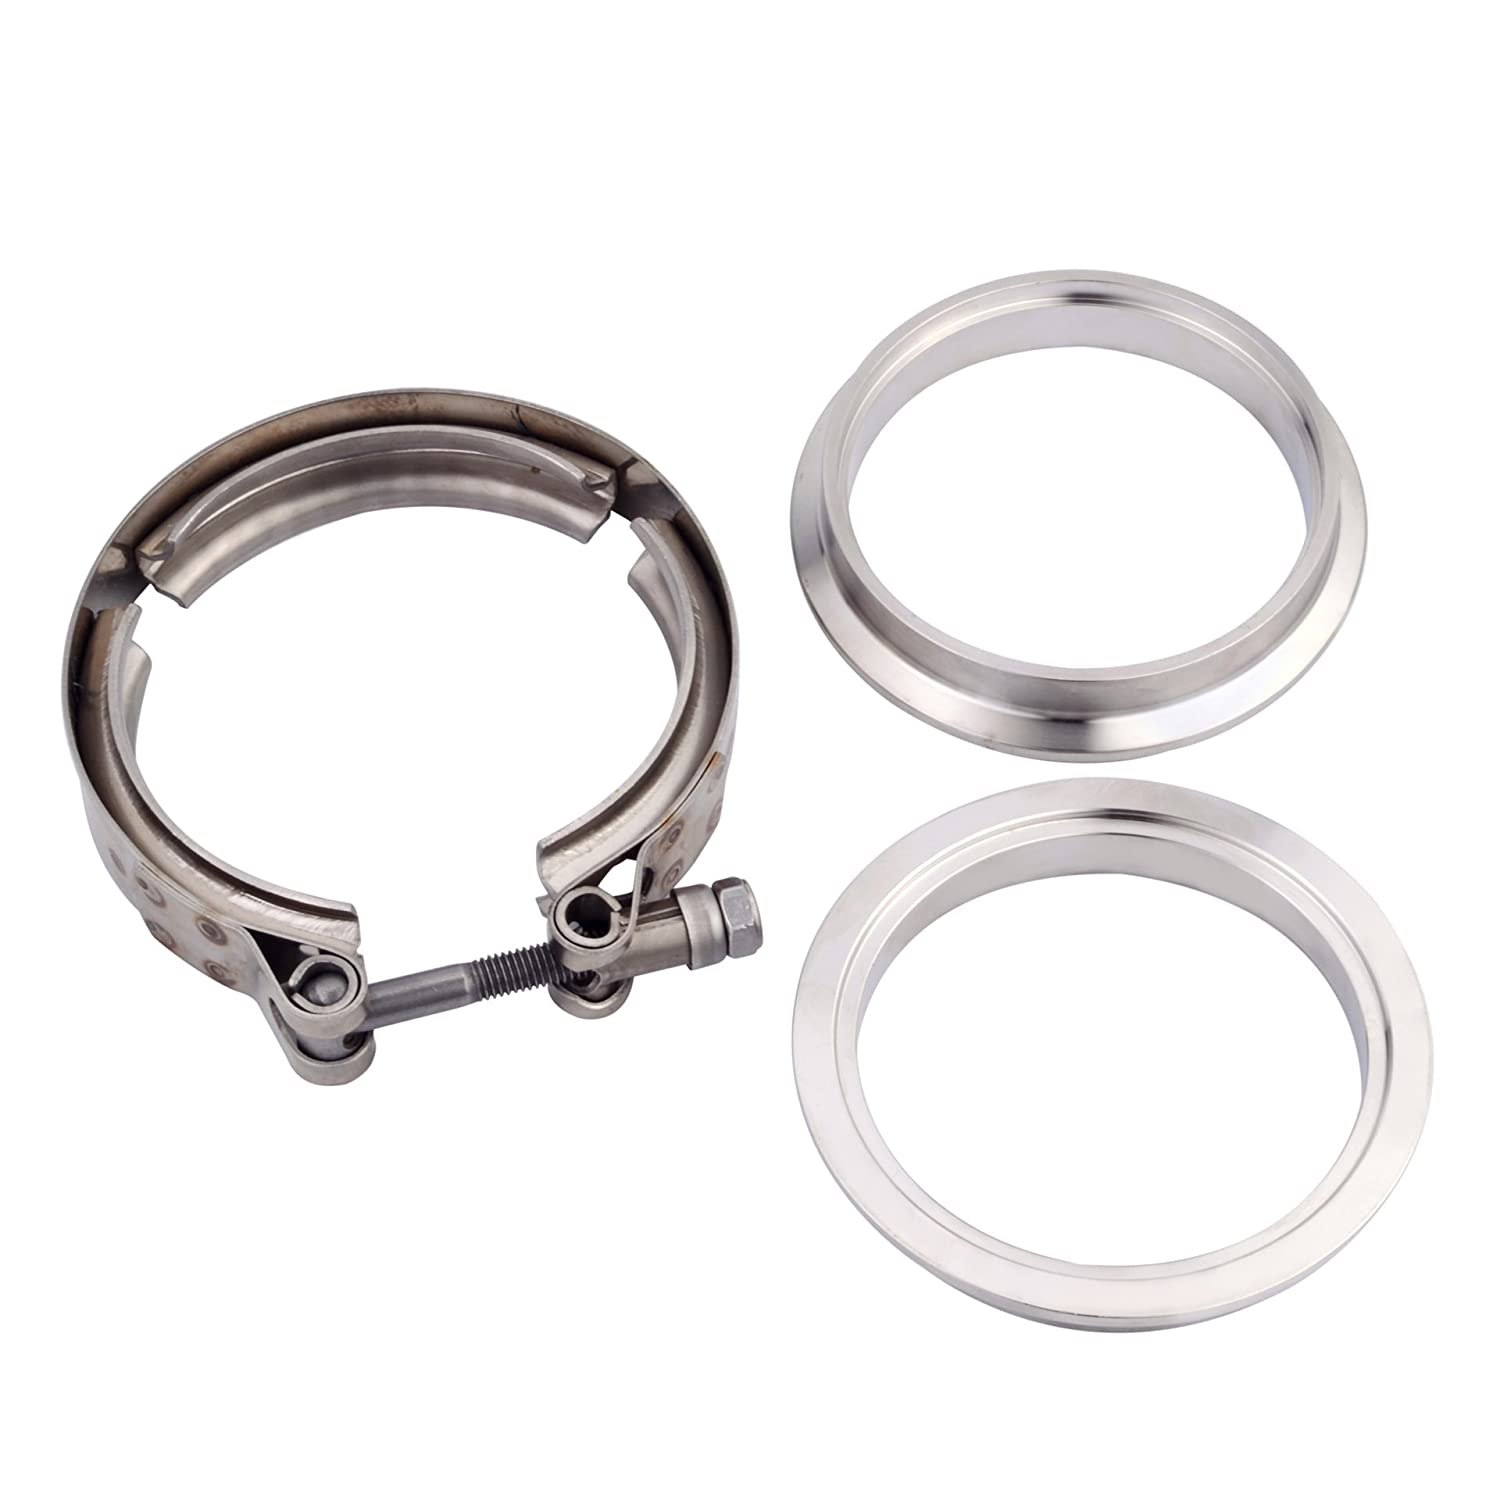 2Pcs V Band Exhaust Clamp ESPEEDER 3.0 V Band Clamp Kit with Stainless Steel Male Female Flange for Excellent Sealing Performance